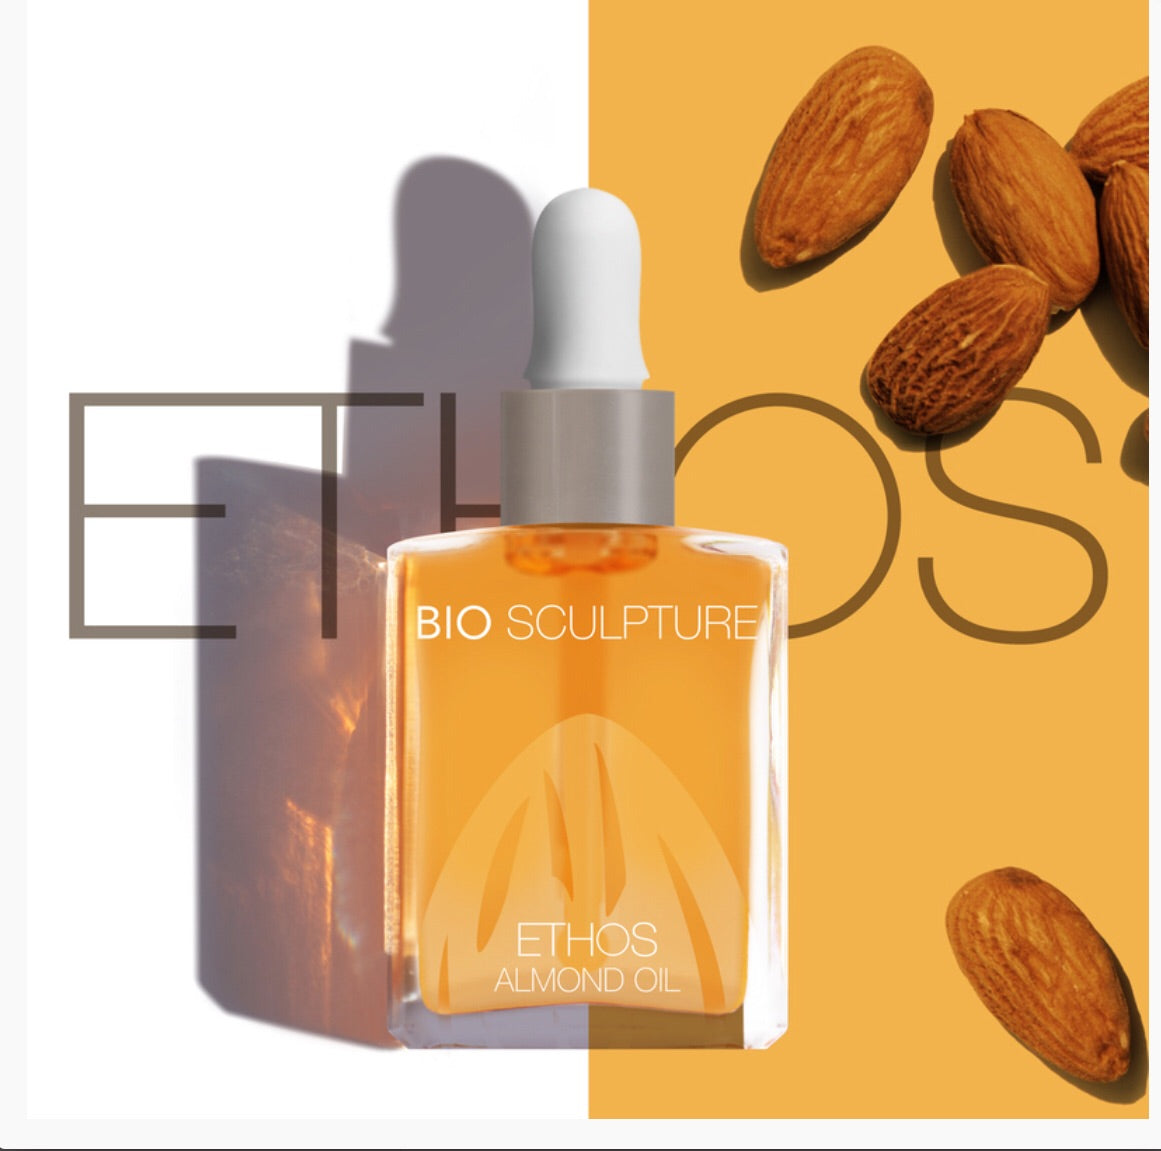 ETHOS Almond Oil 14ml by Bio Sculpture